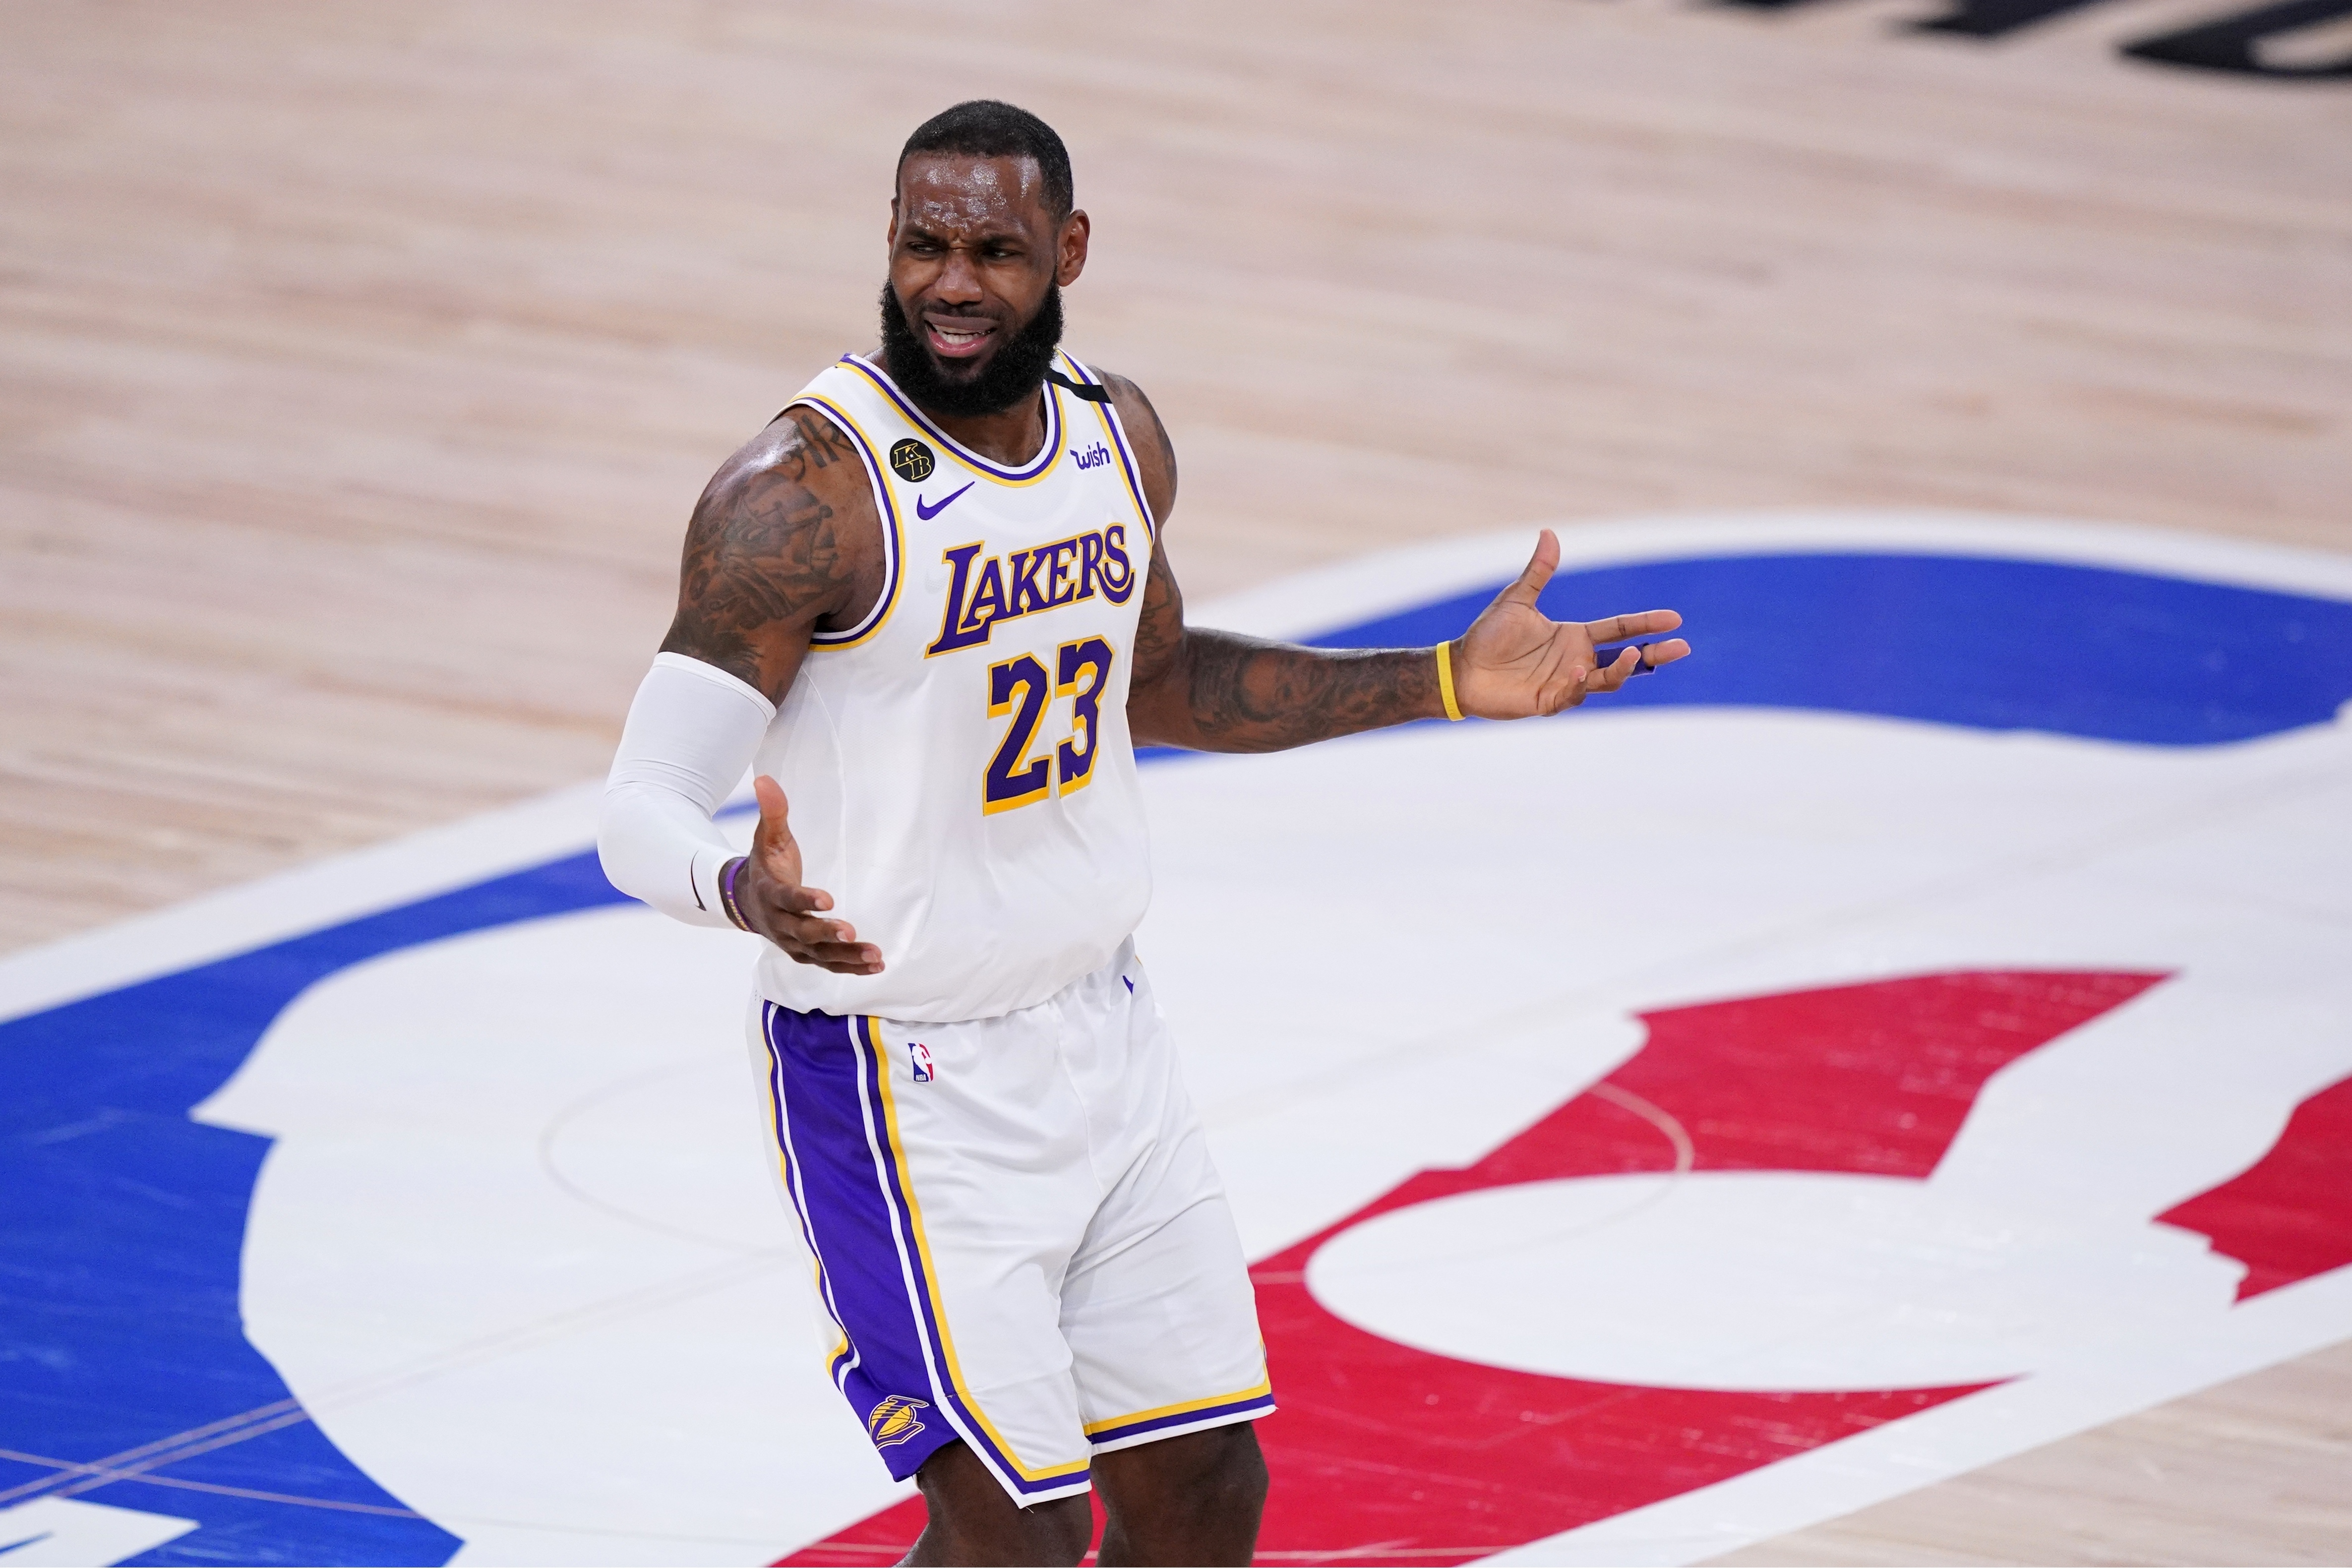 Los Angeles Lakers' LeBron James (23) gestures during the first half of Game 3 of the NBA basketball Western Conference final against the Denver Nuggets on Tuesday, Sept. 22, 2020, in Lake Buena Vista, Fla.